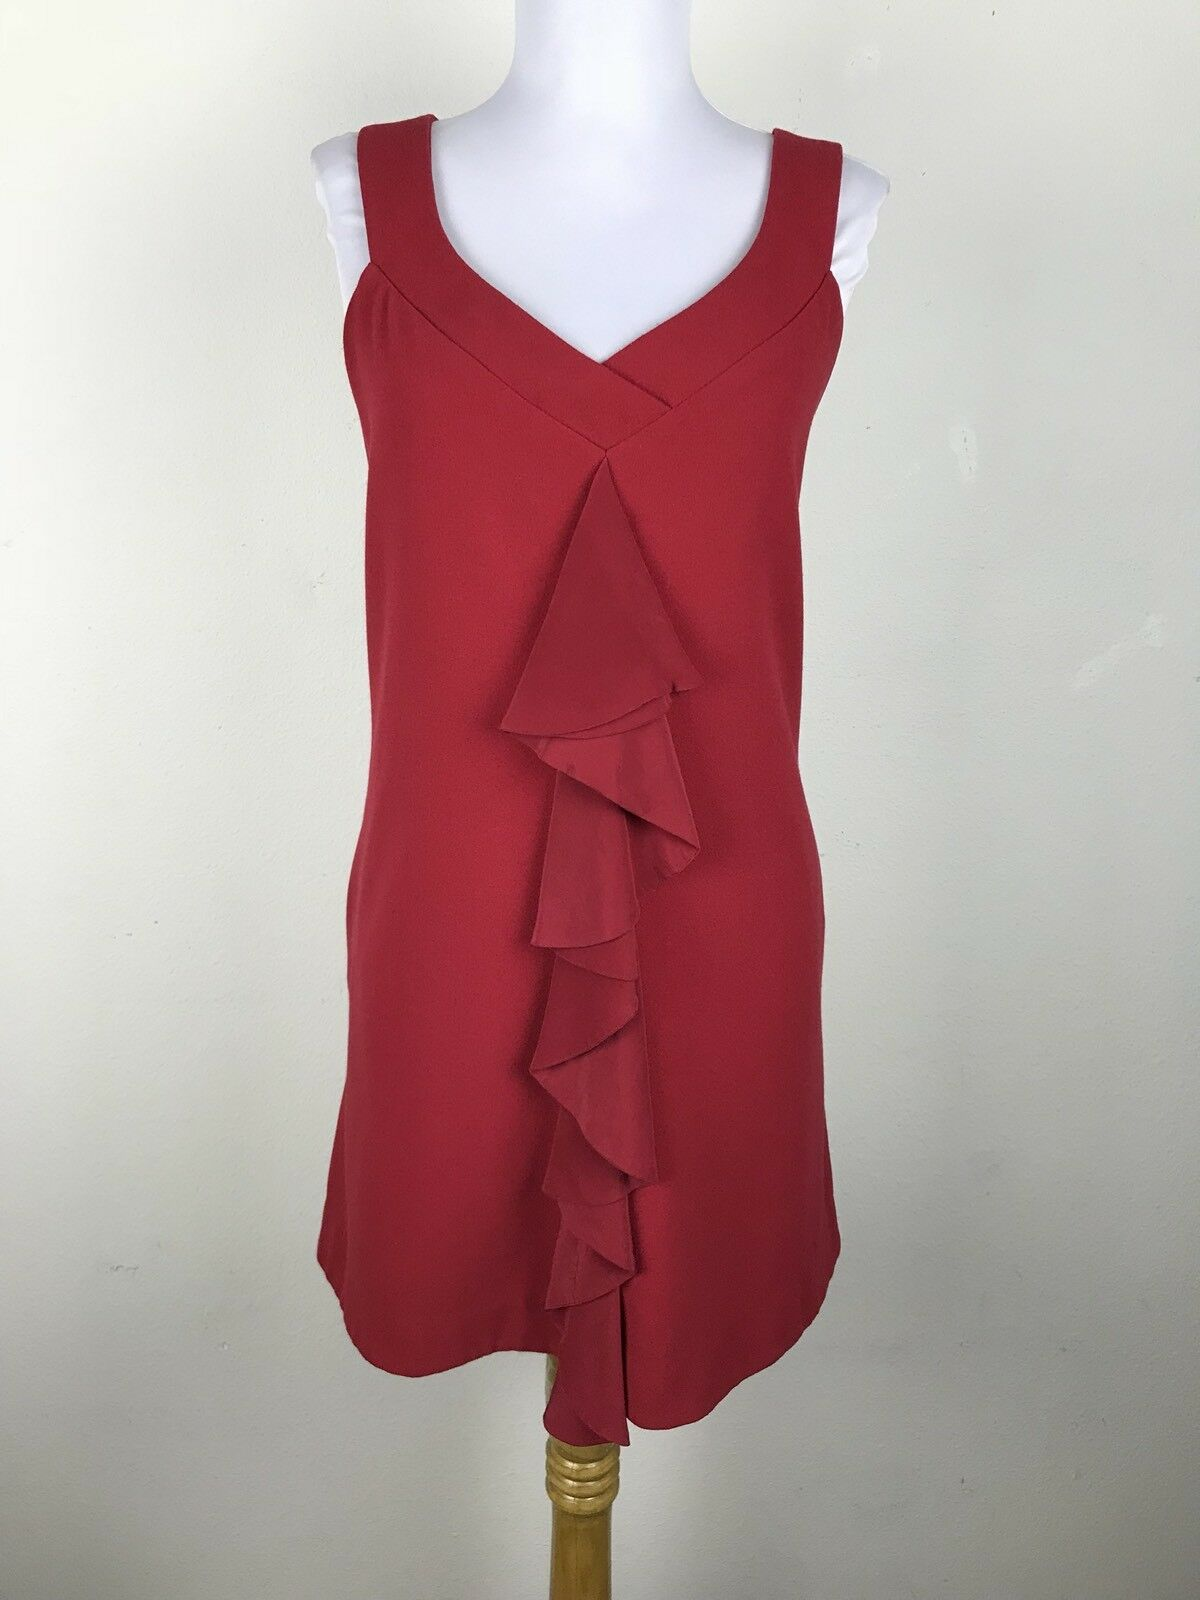 schwarz Halo Dress Größe 10 rot Sleeveless Ruffled Pockets V Neck Shift Cocktail